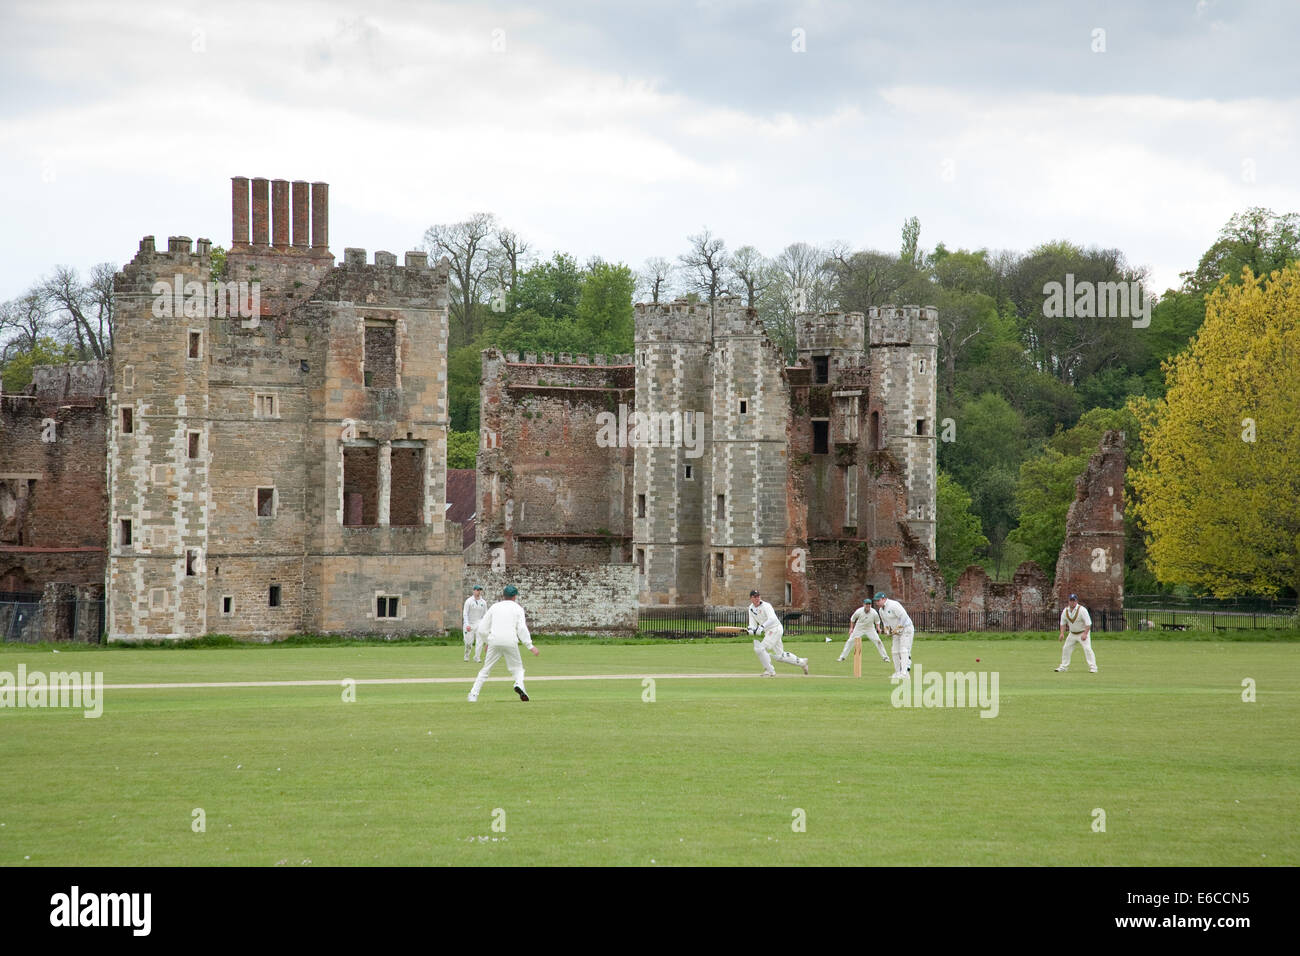 A cricket game being played at Cowdray Park in Sussex England UK, with a backdrop of Cowdray House, a ruined Tudor - Stock Image